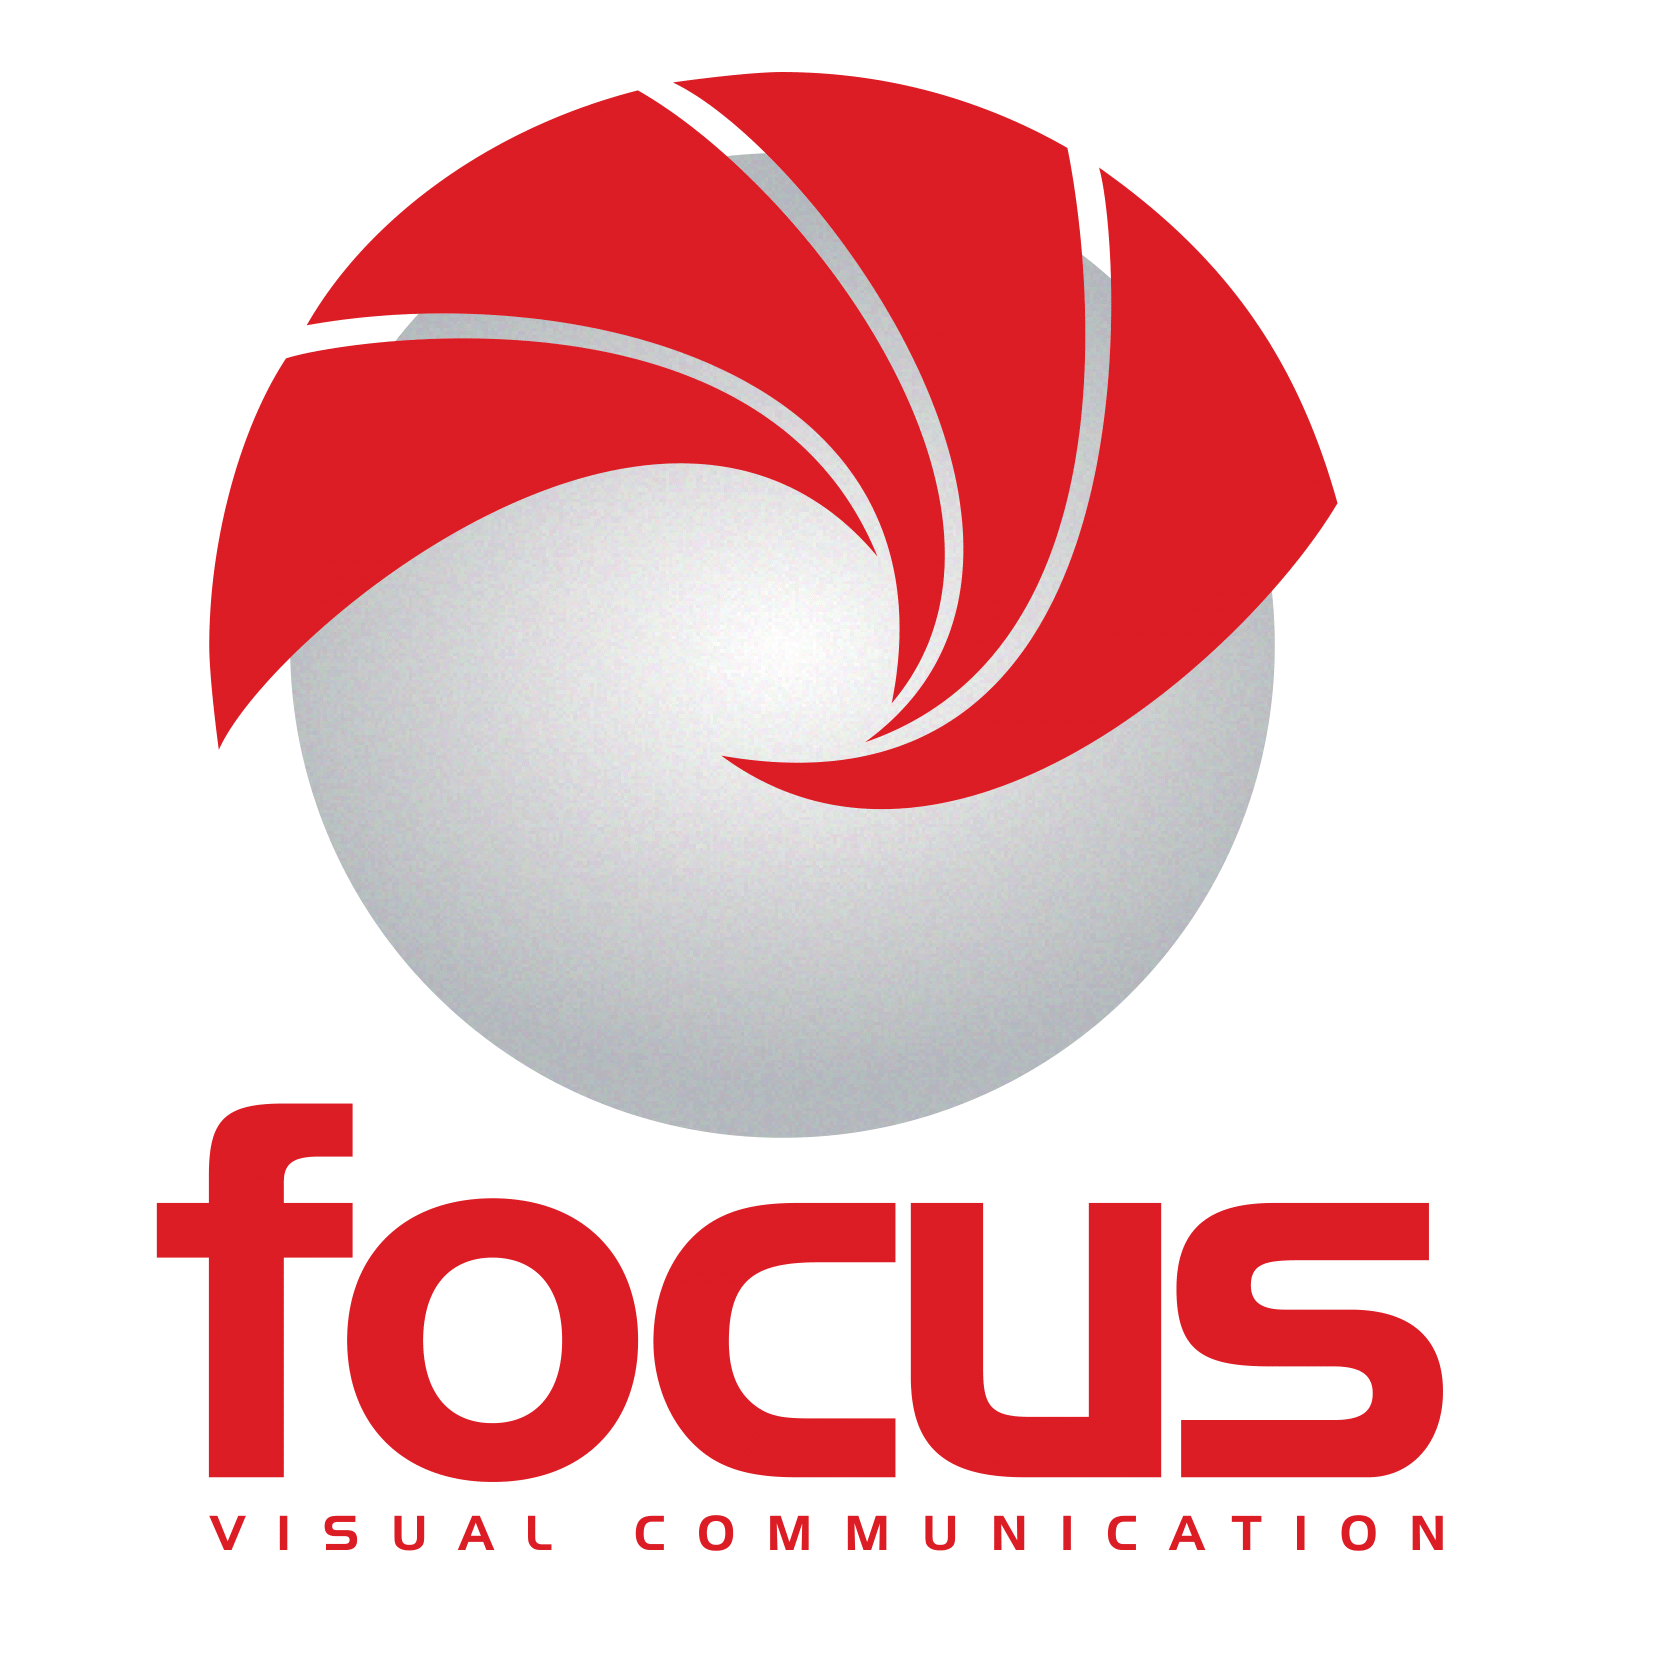 Focus Visual Communication